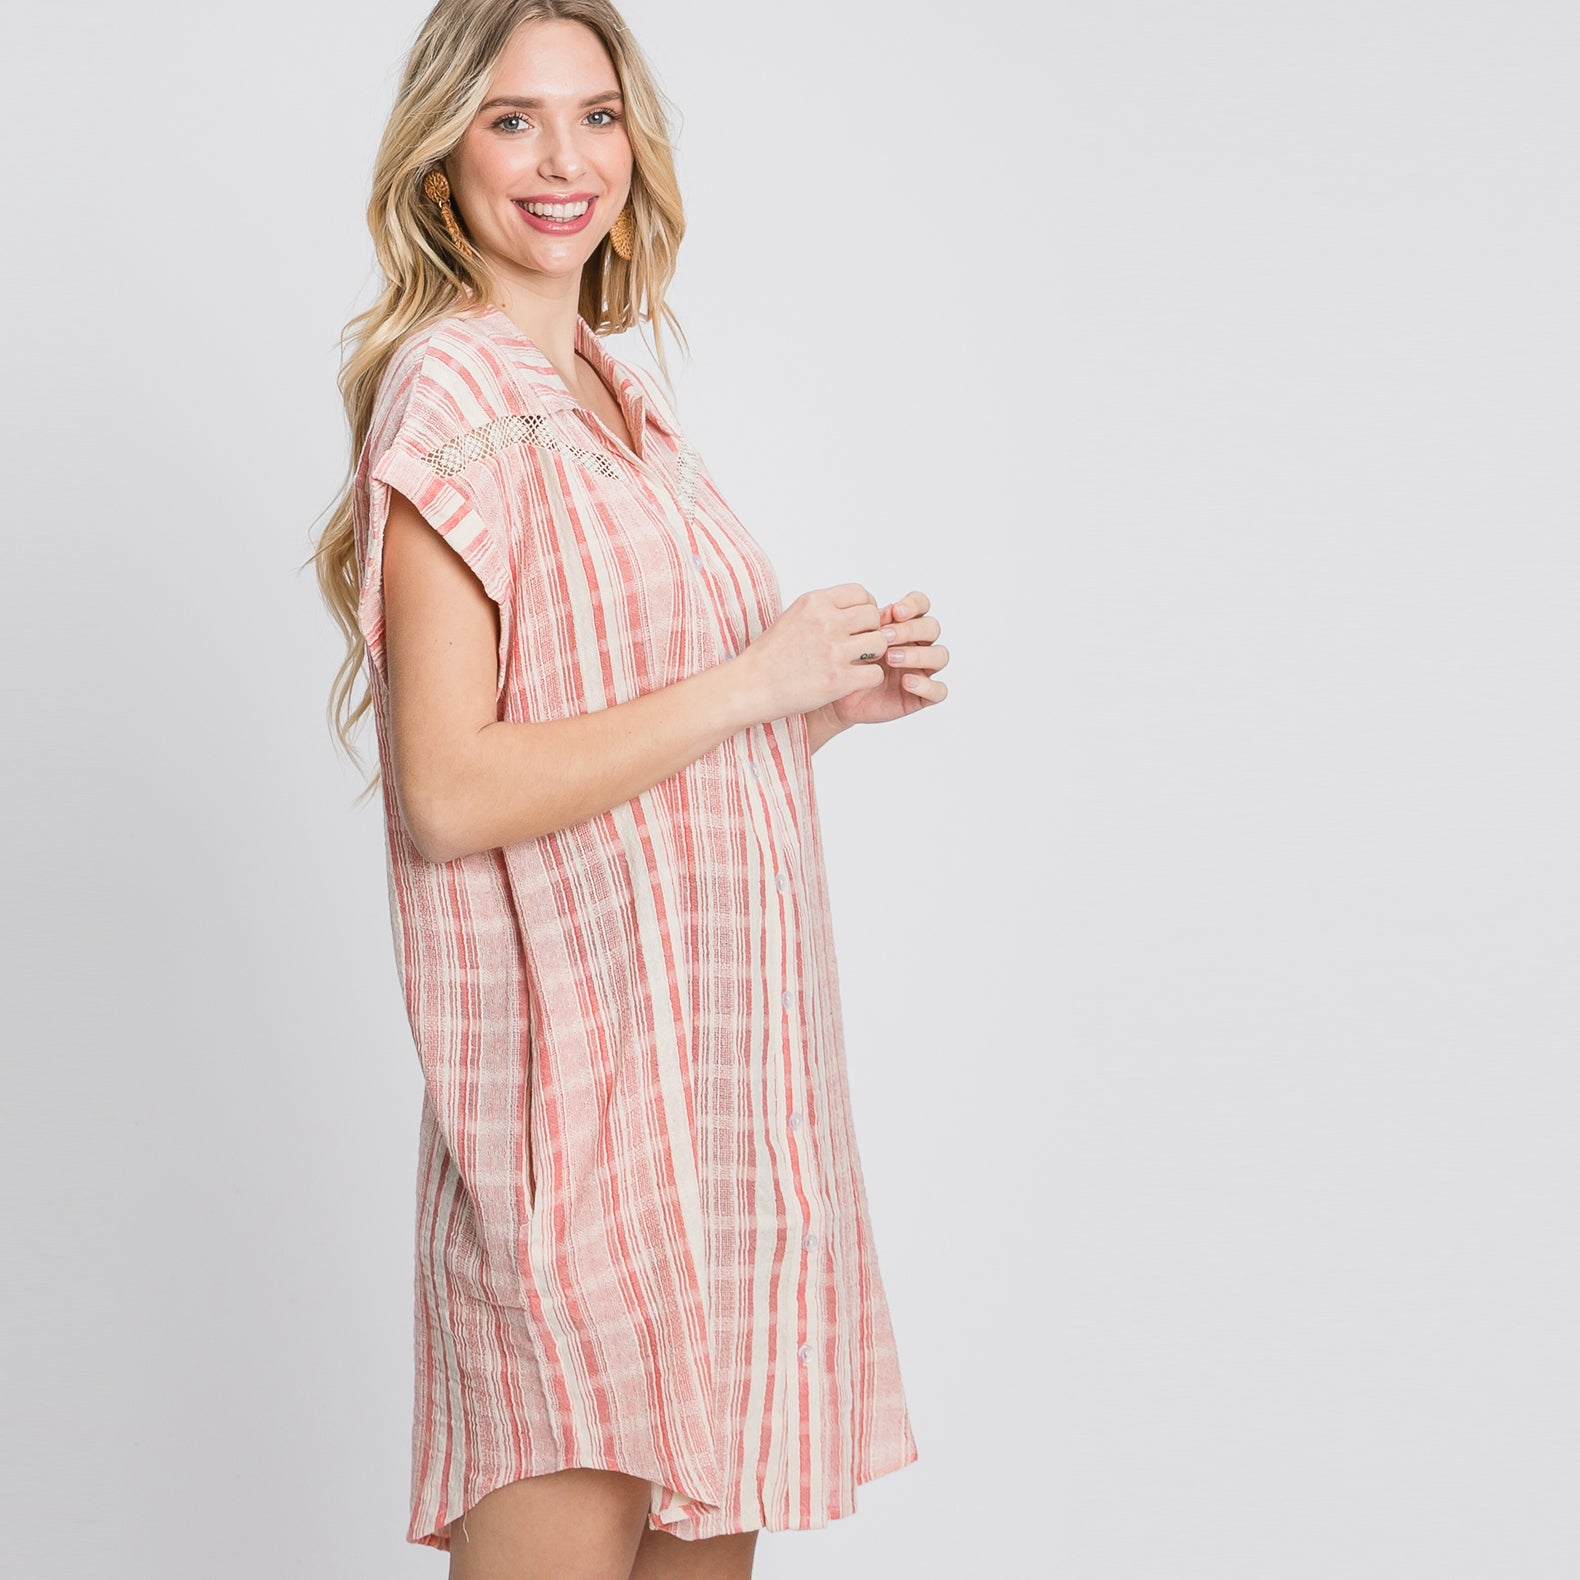 Fun Loving Shirt Dress